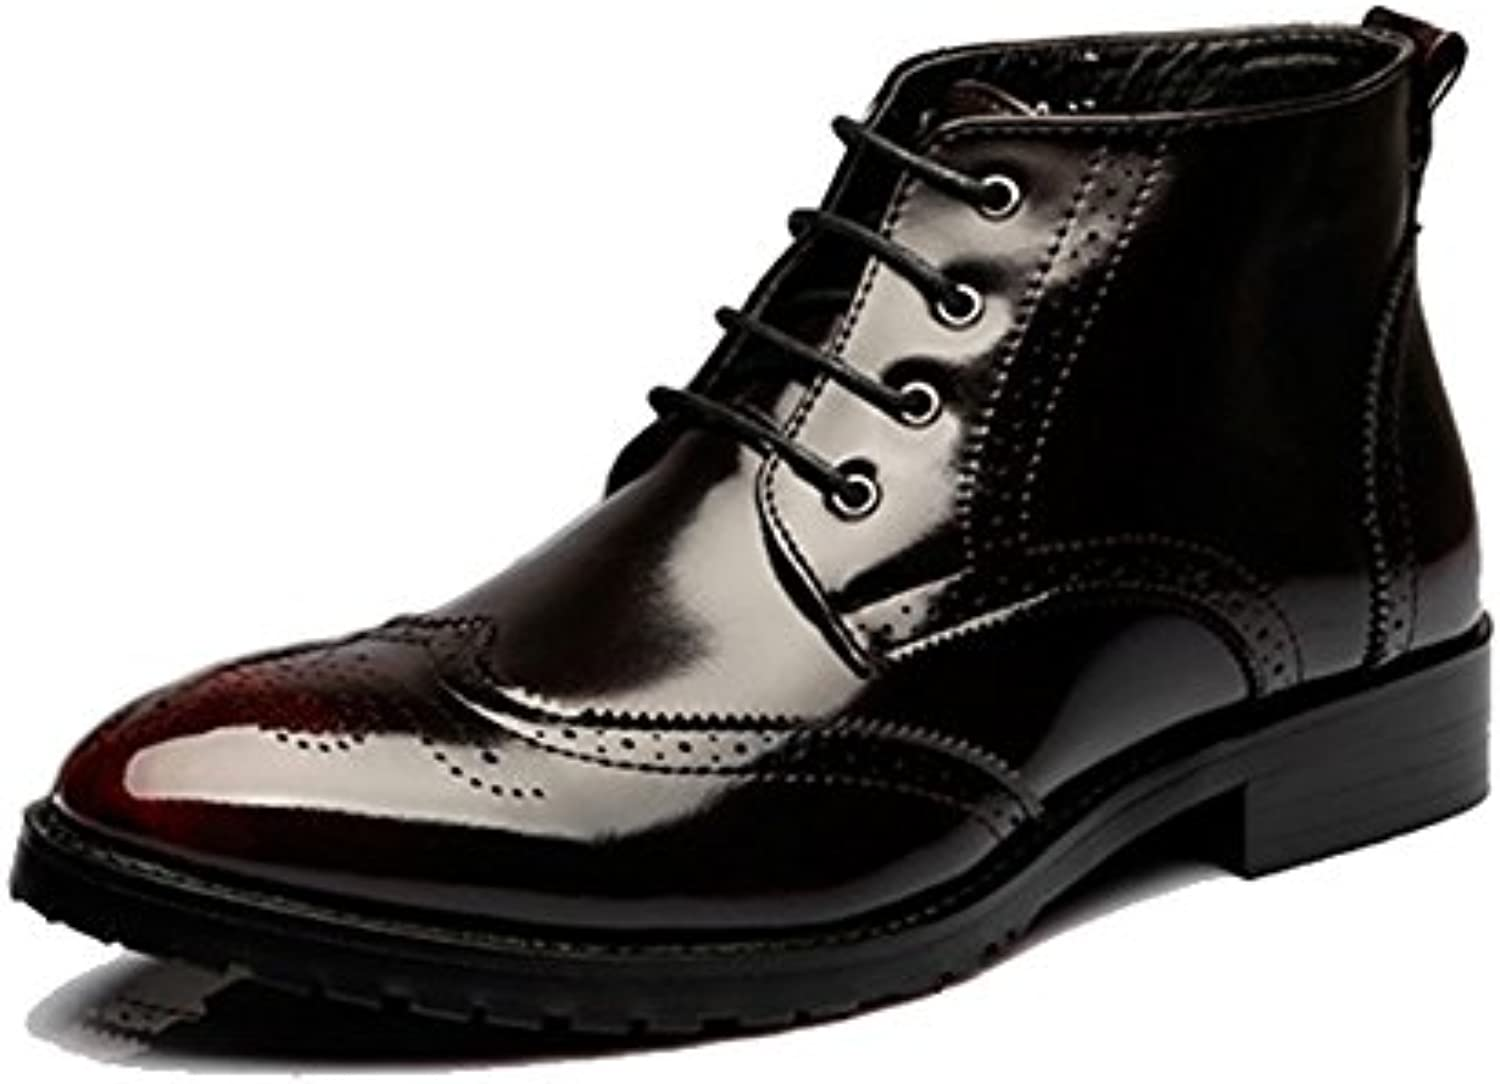 Beinfaith Men's Classic Leather Brogues Oxfords Ankle Dress Boots